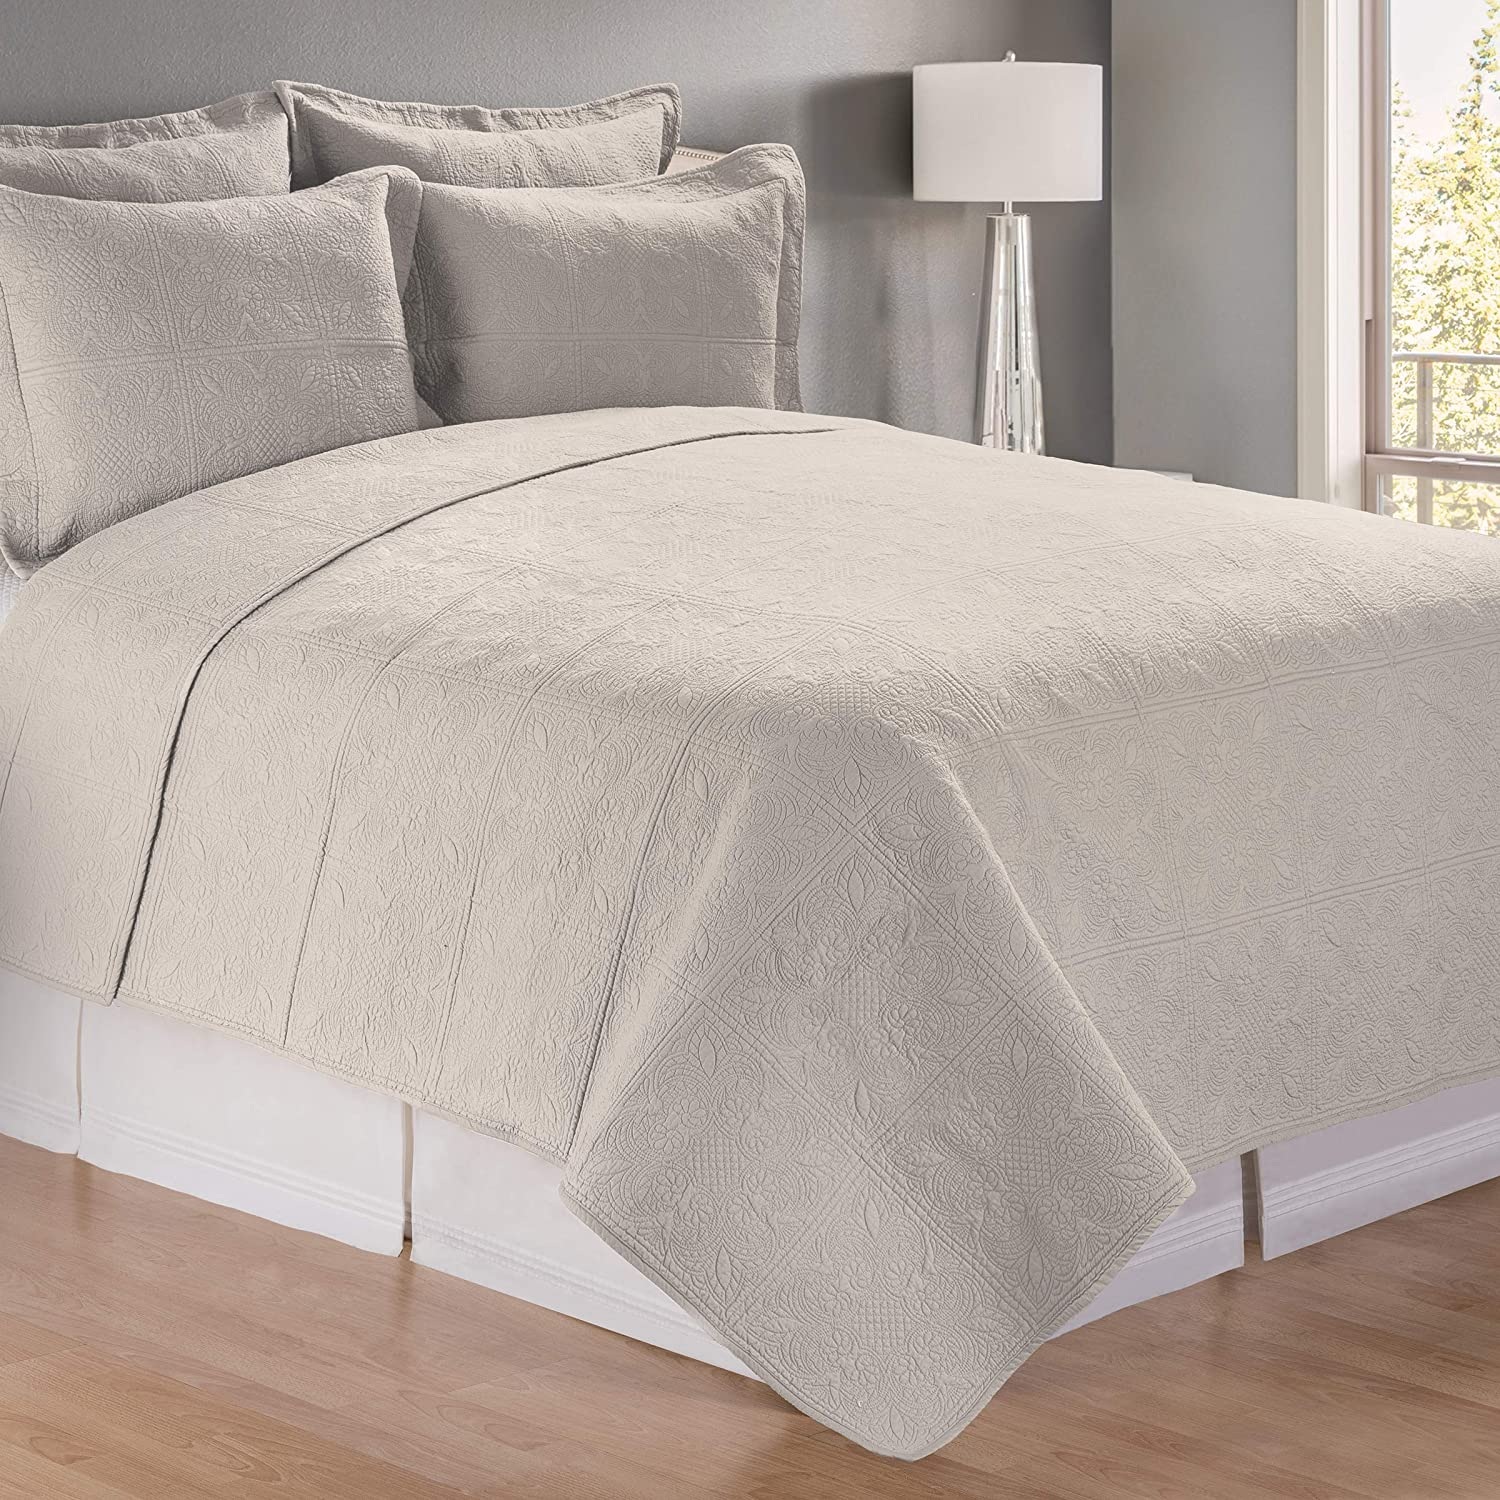 C&F Home King Apothecary Quilt Taupe King 100